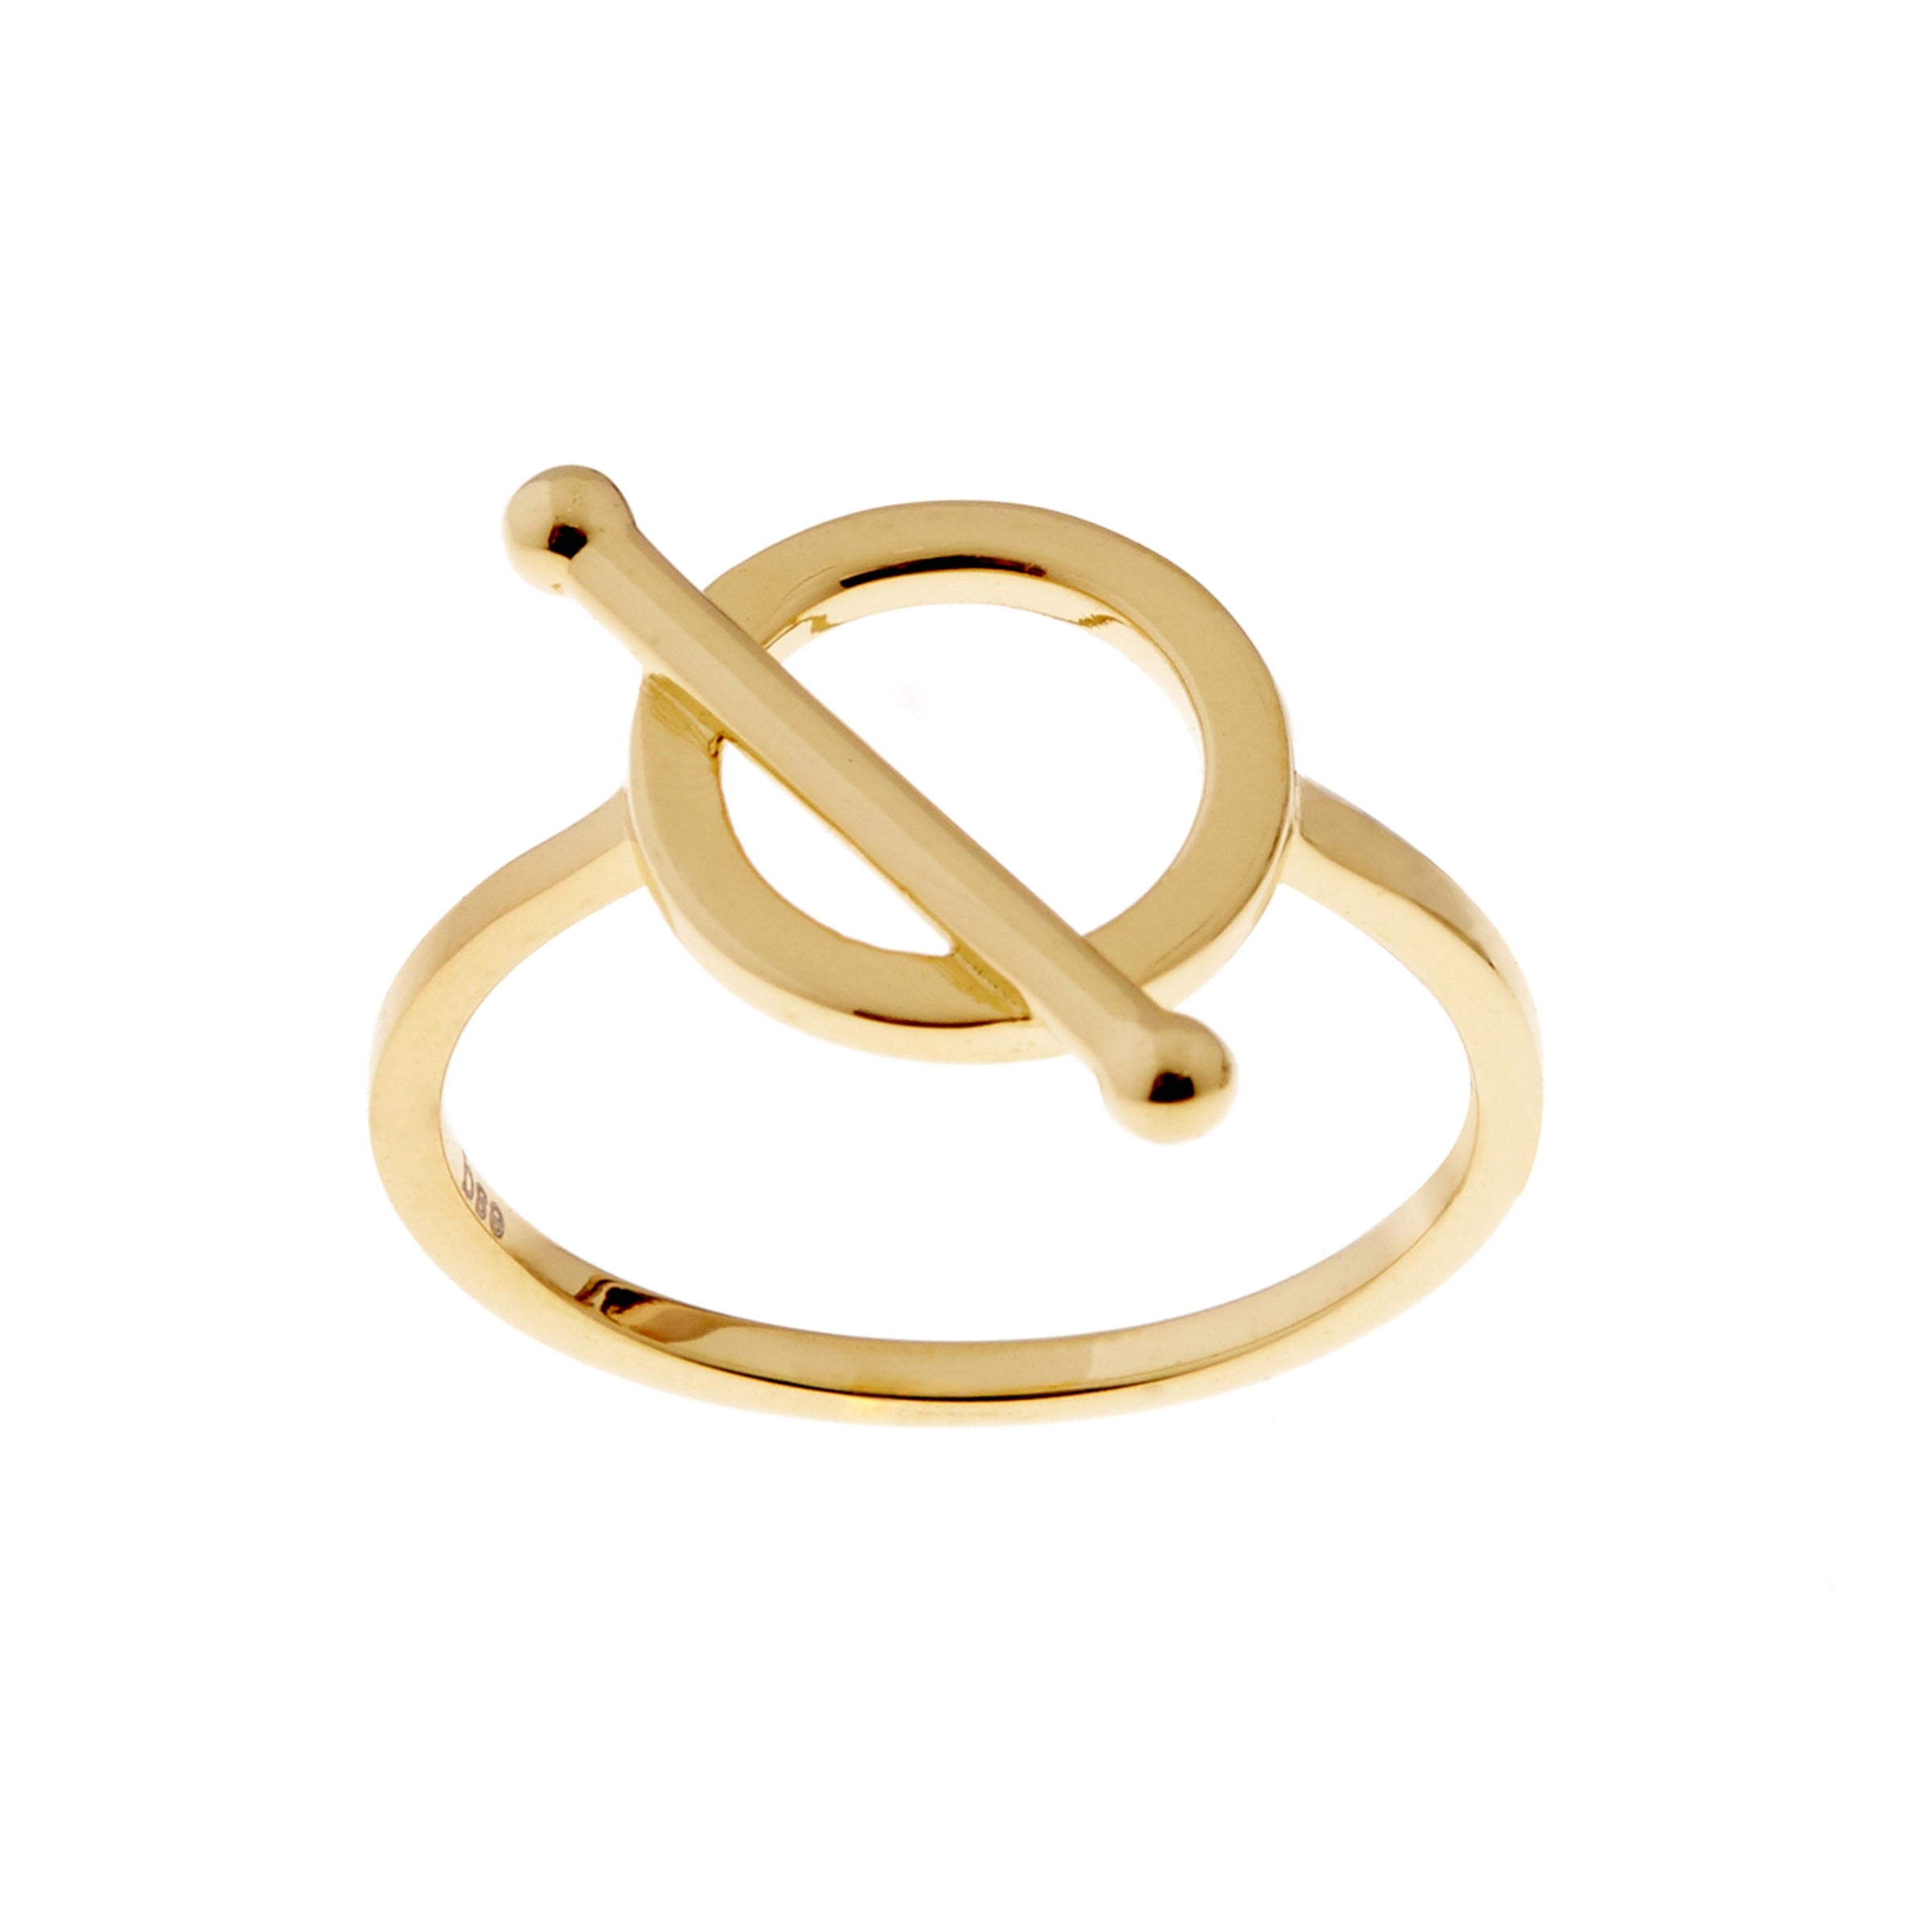 Bri Gold Ring